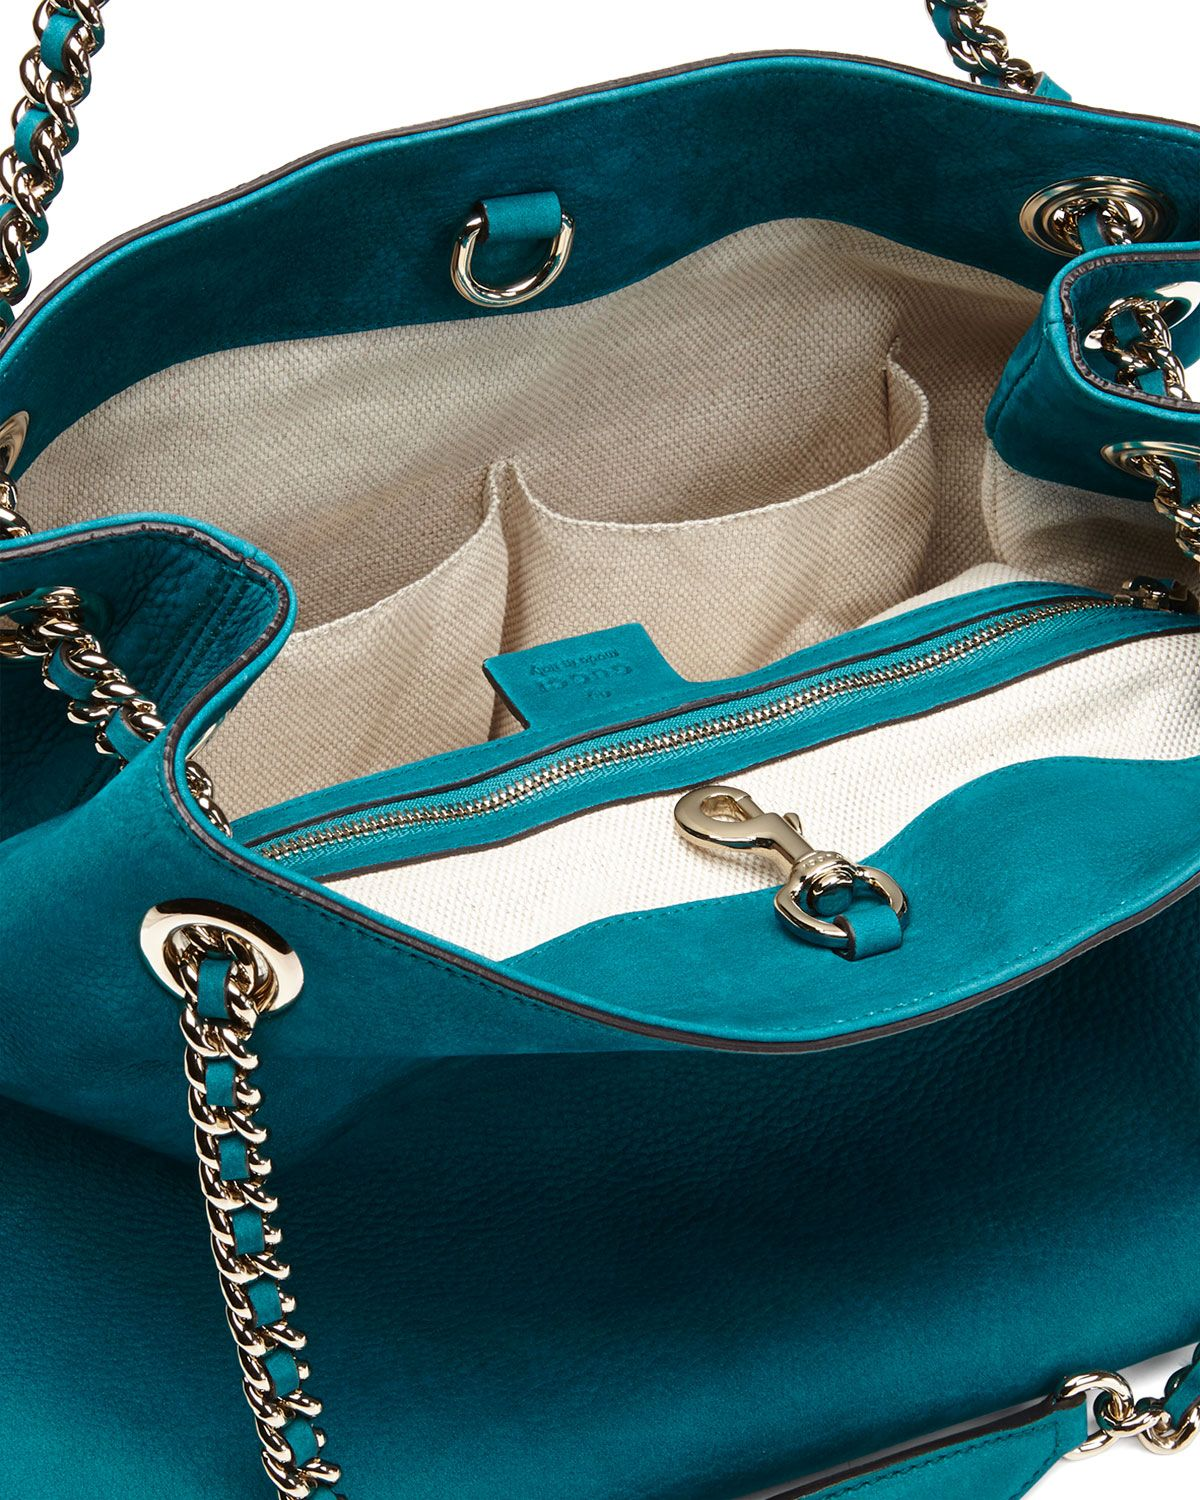 Soho Nubuck Leather Shoulder Bag, Turquoise